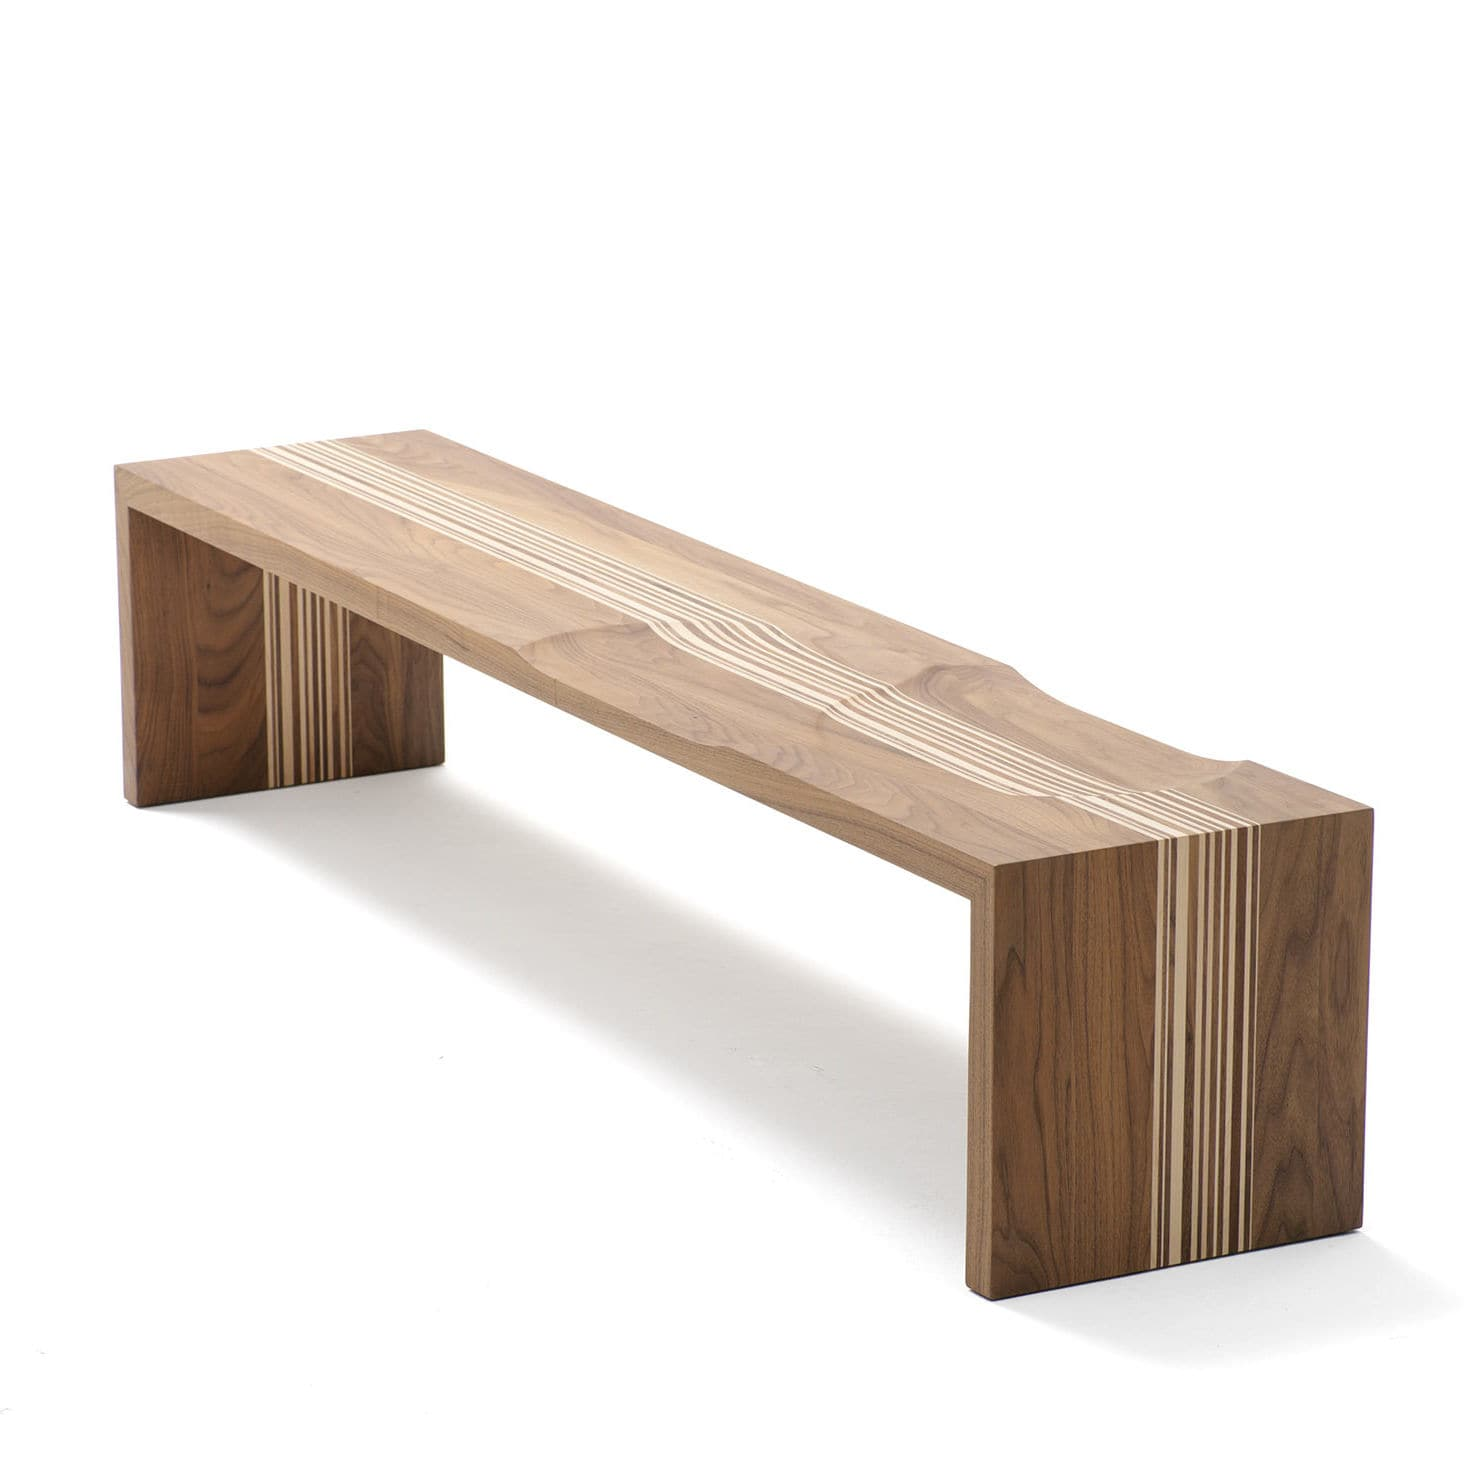 contemporary bench  wooden  code by miriam van der lubbe  arco - contemporary bench  wooden  code by miriam van der lubbe